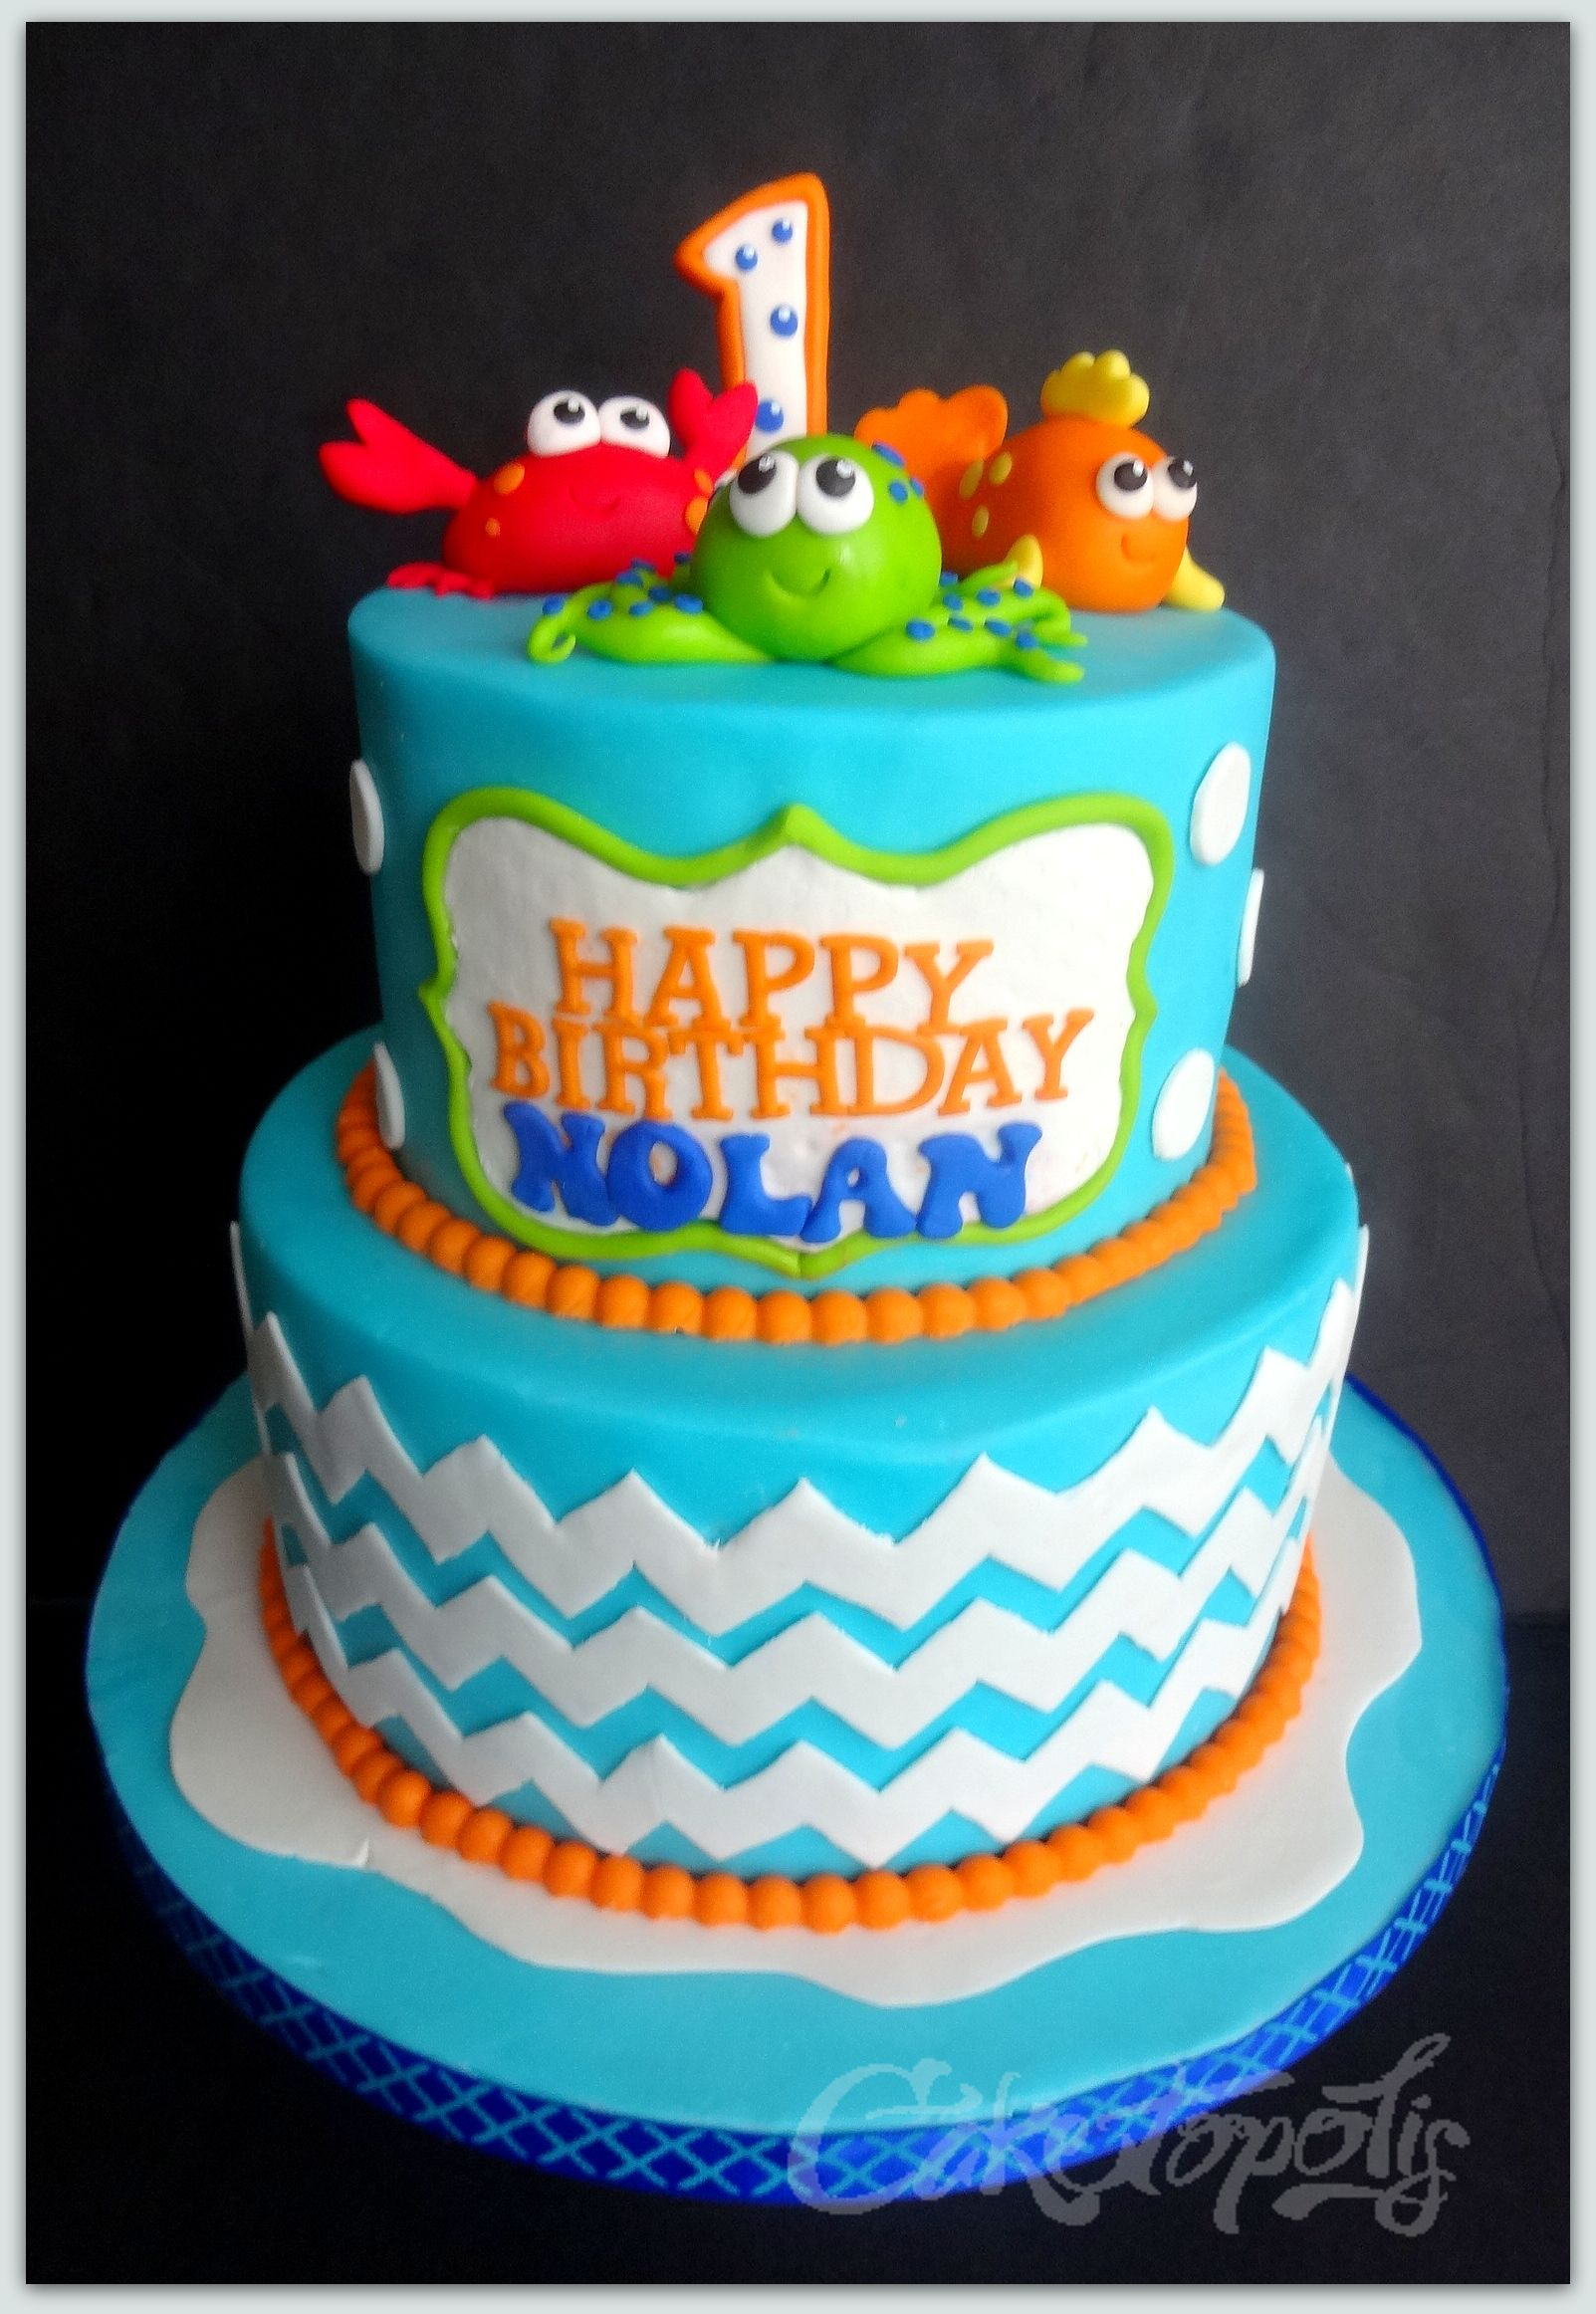 Under The Sea First Birthday Cake First Birthday Cakes First Birthday Cakes Boy Birthday Cake Sea Birthday Party